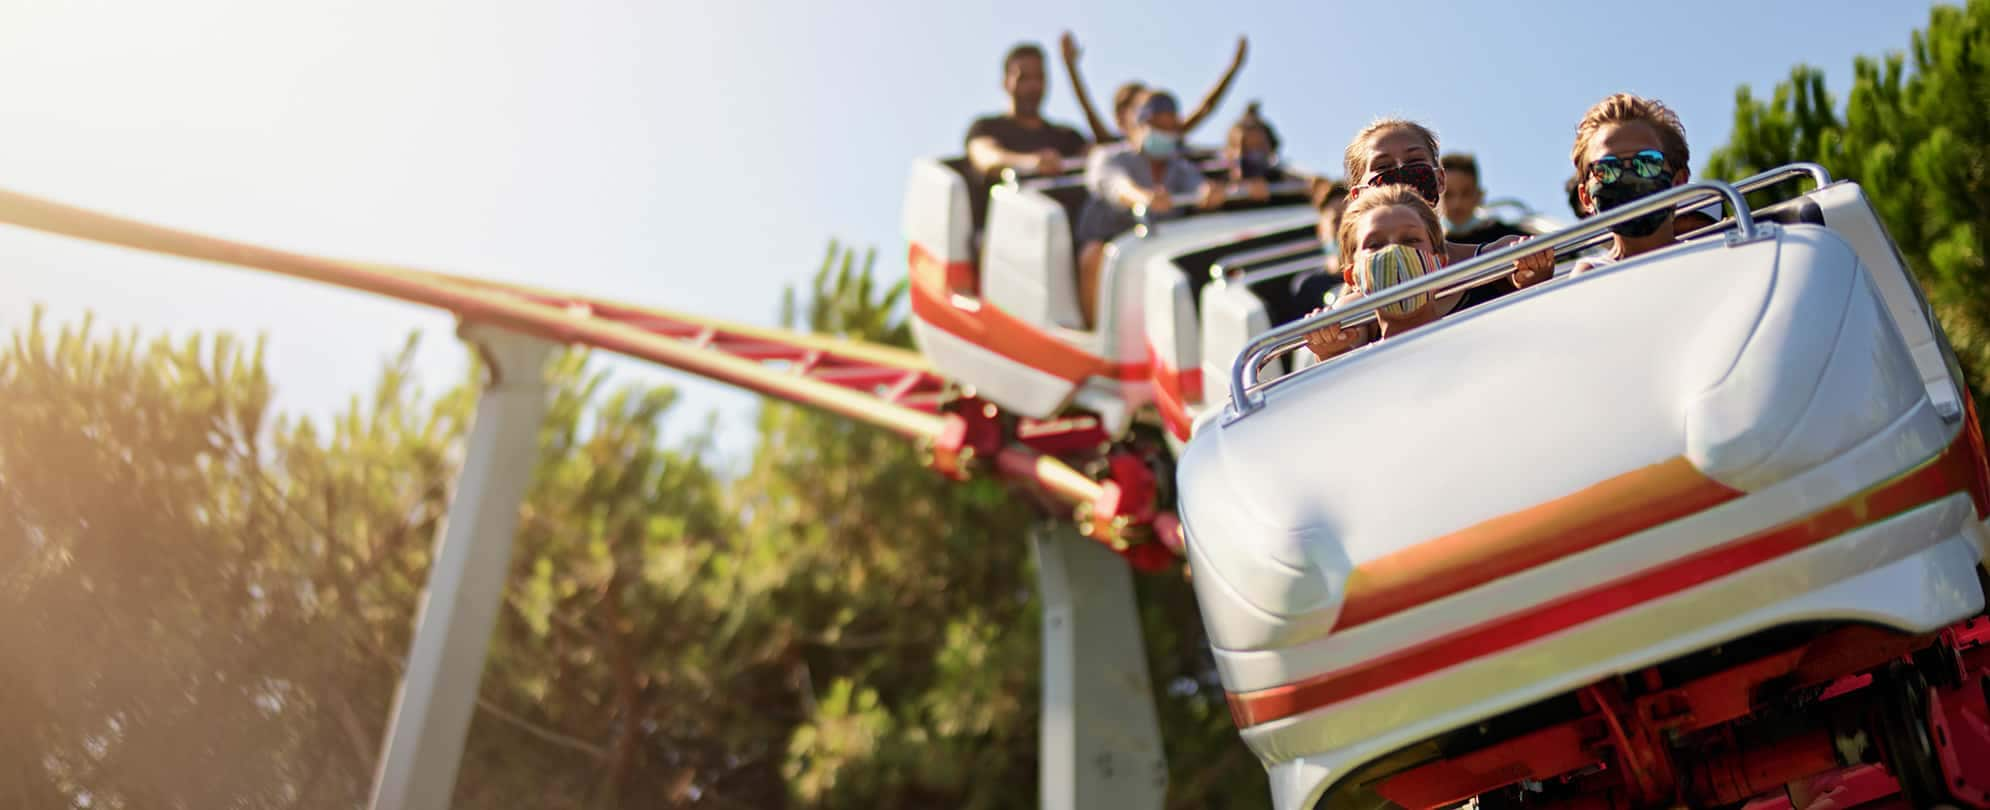 Three mask-wearing kids ride in the front car on a white and red roller coaster